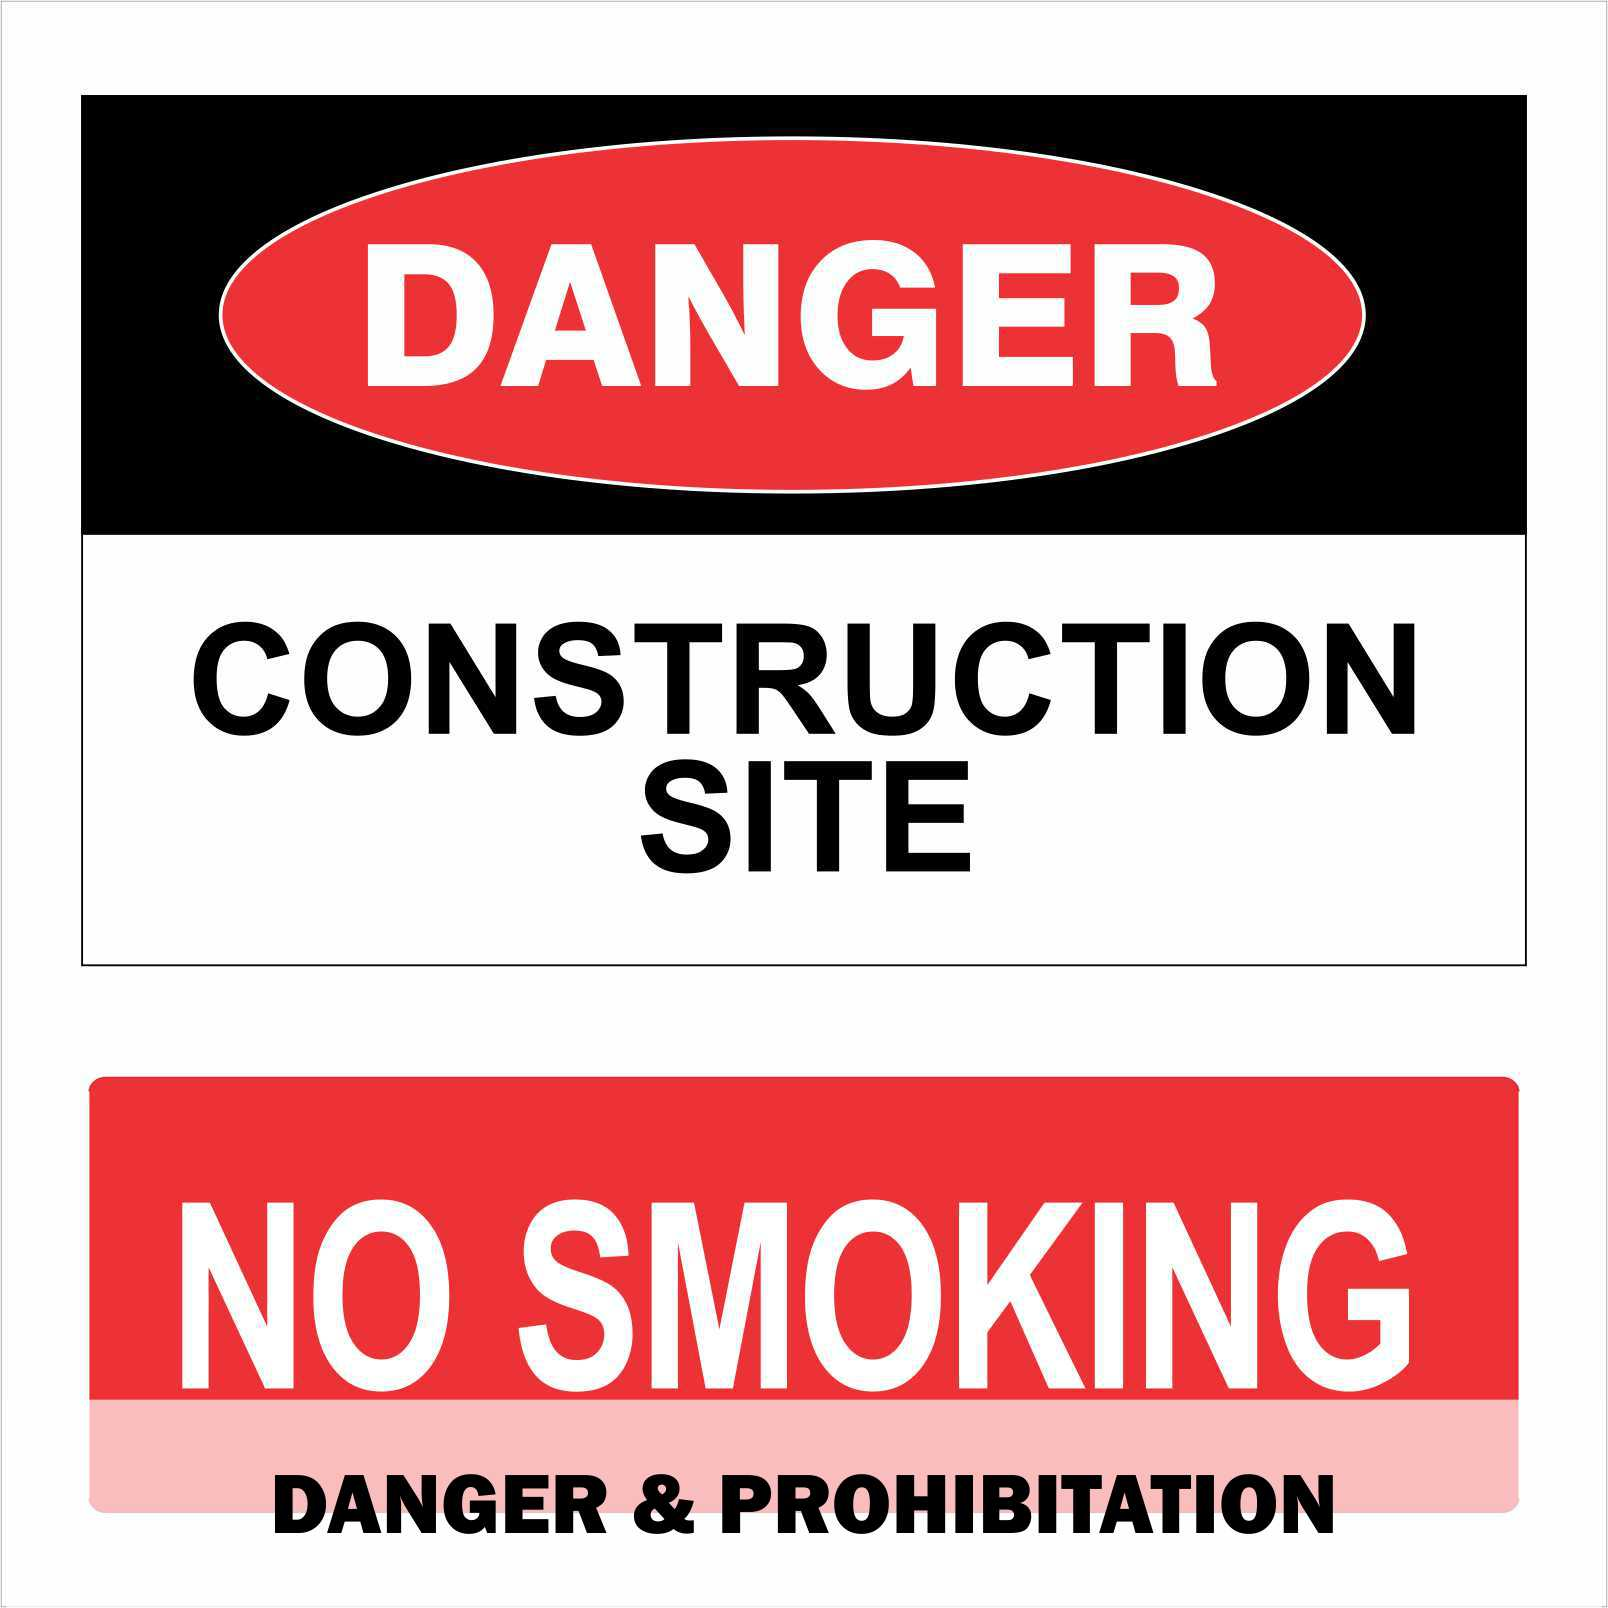 Danger & Prohibitation